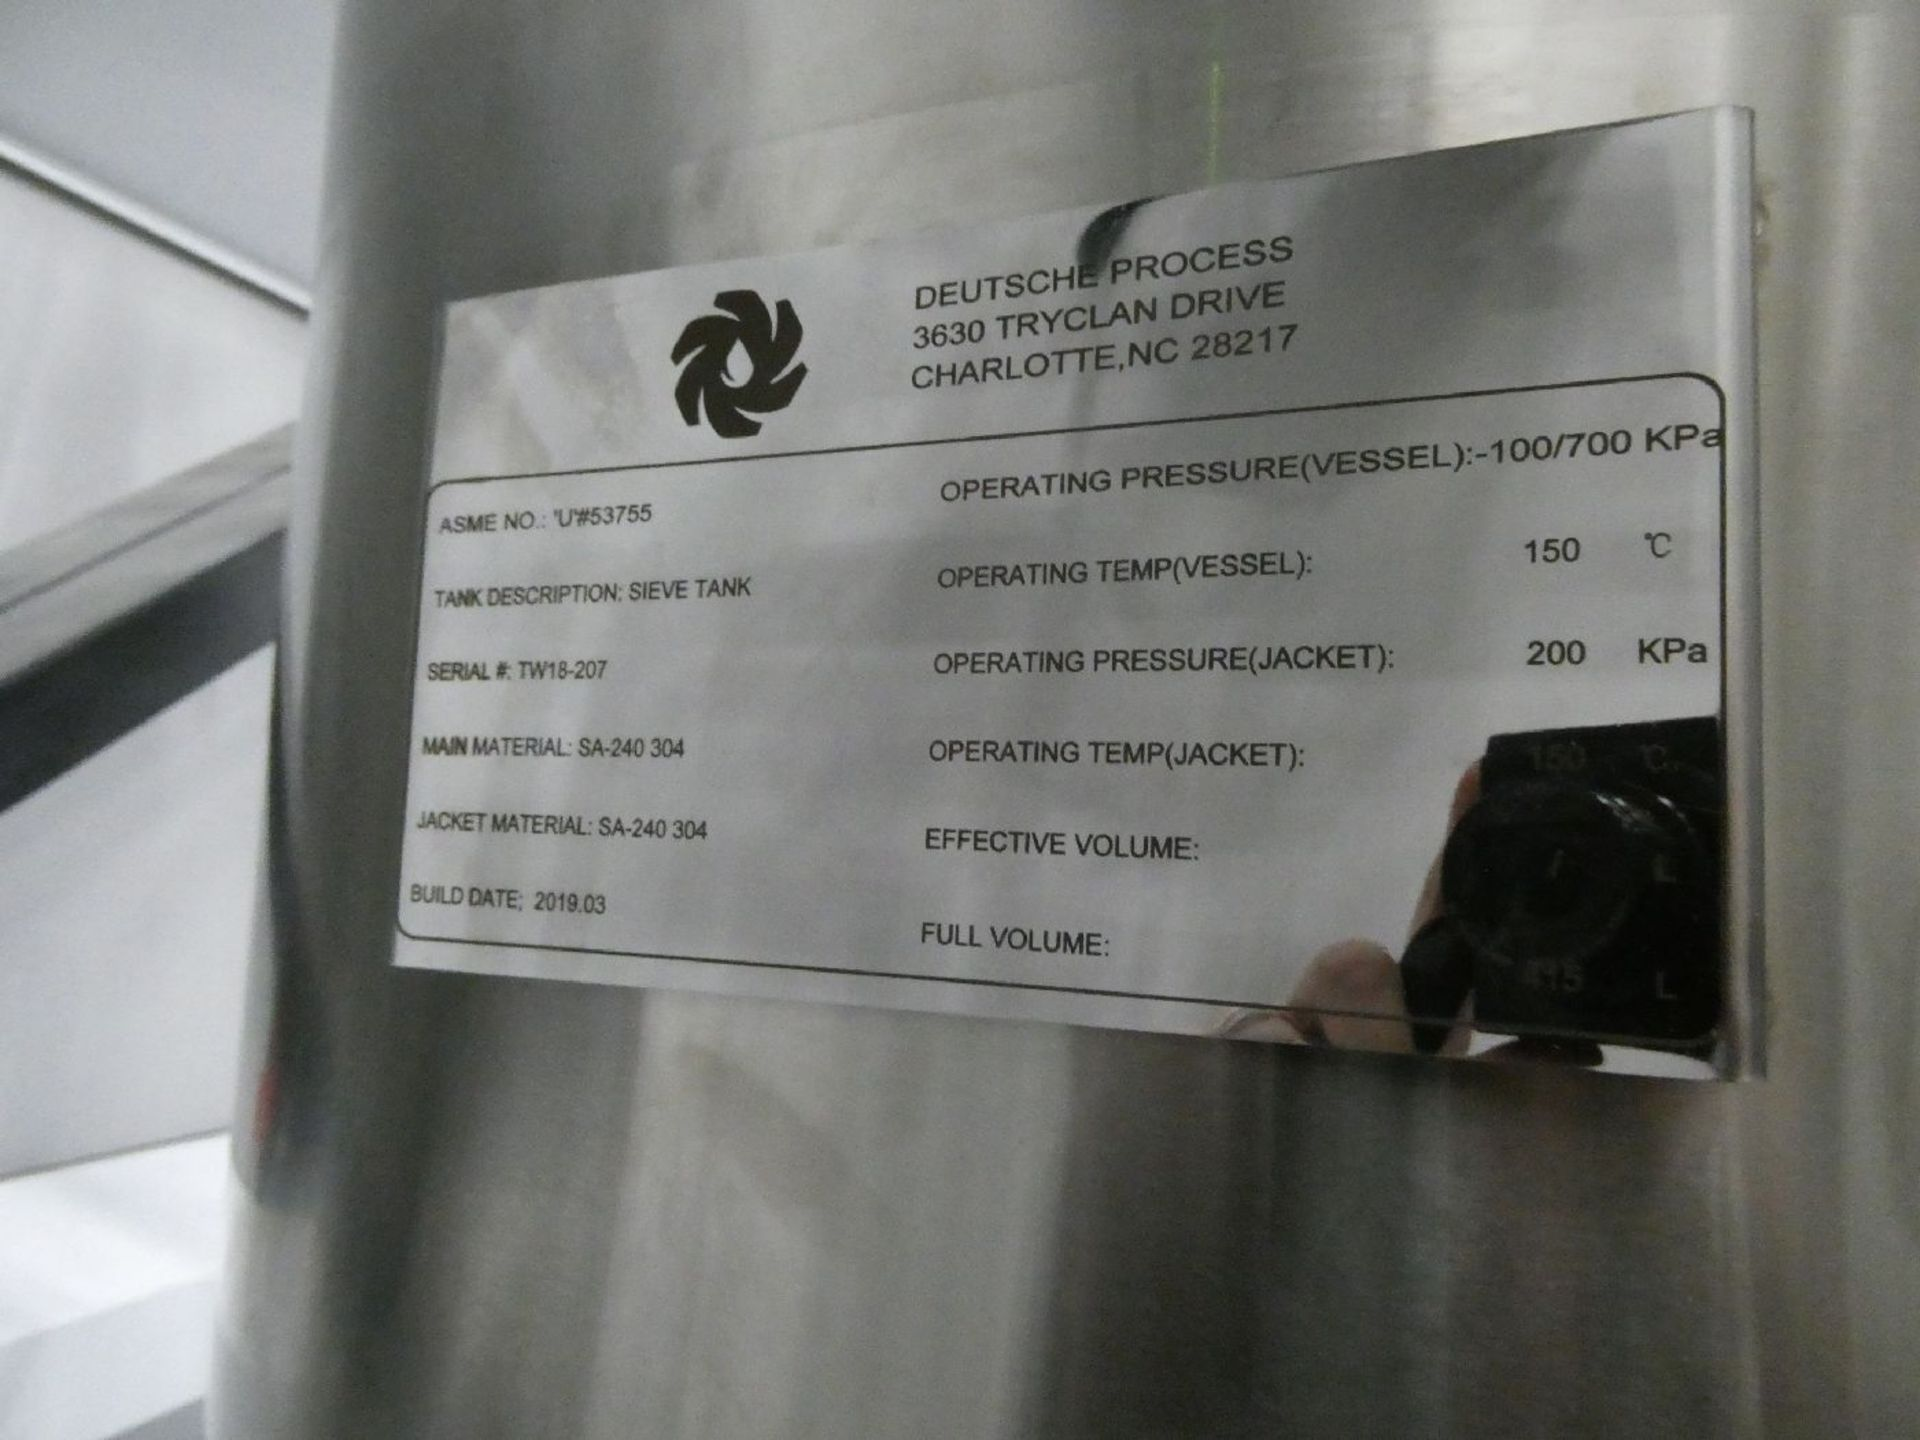 ROTAX Closed Loop Solvent Based Continuous Oil Extraction System - Image 35 of 68